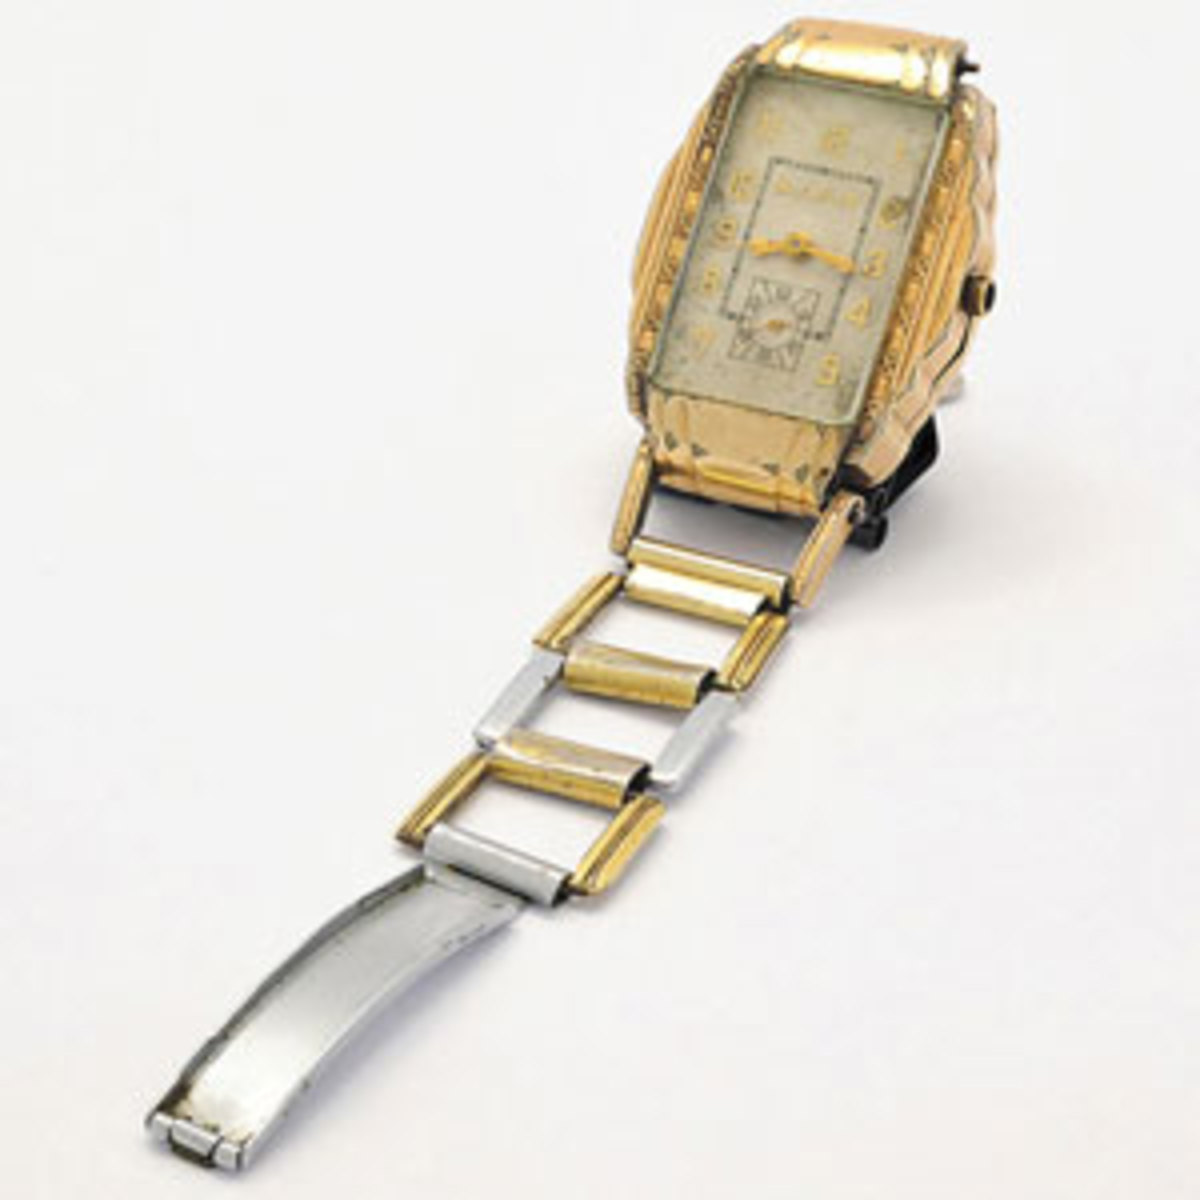 The top-selling item was this gold wristwatch, $112,500.